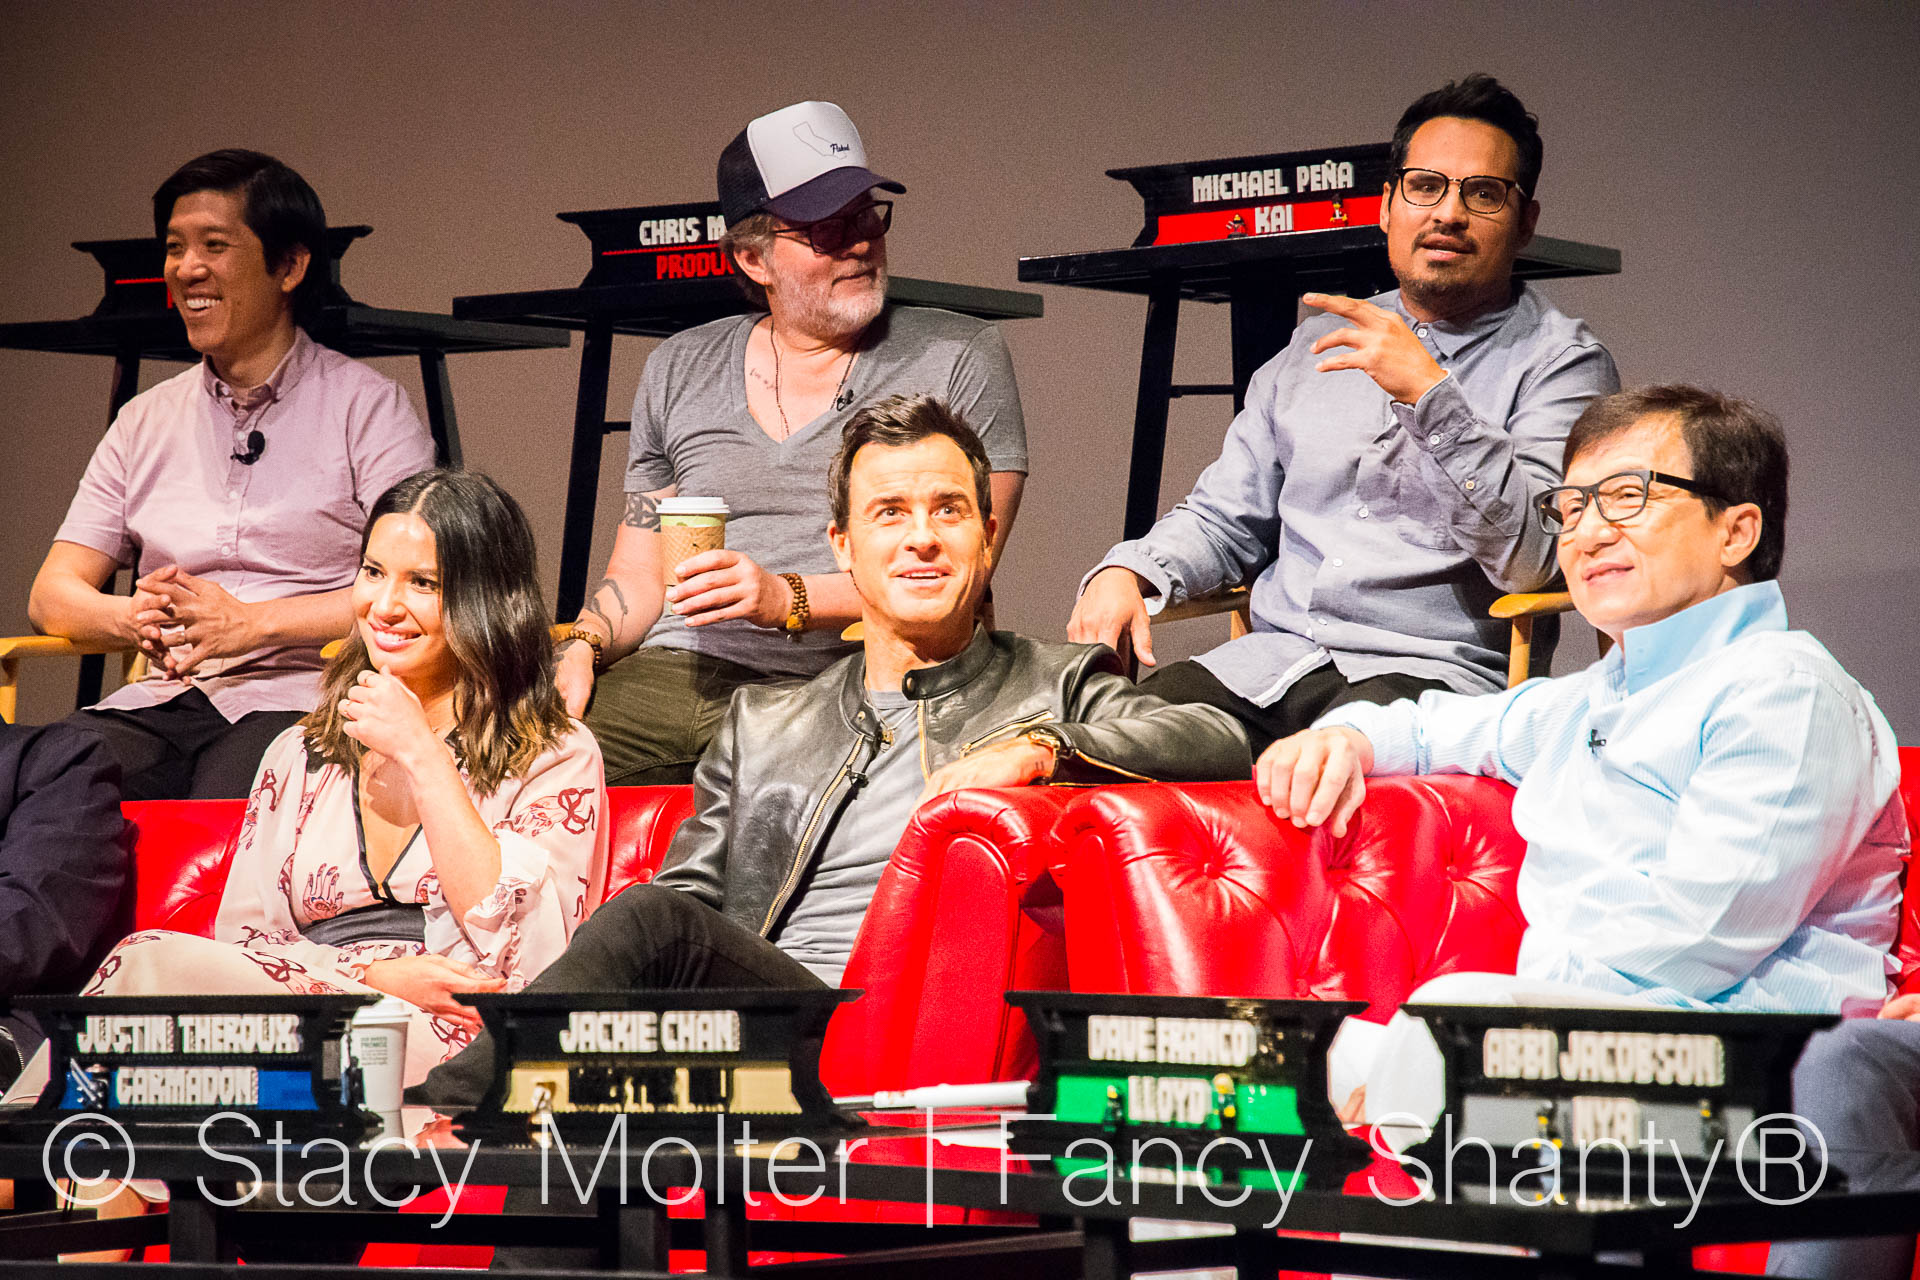 Jackie Chan, Dave Franco, Justin Theroux, Olivia Munn, Michael Pena, Kumail Nanjiani, Zach Woods, Fred Armisen, Abbi Jacobson, Dan Lin, Chris McKay, Charlie Bean - The Lego Ninjago Movie Press Conference